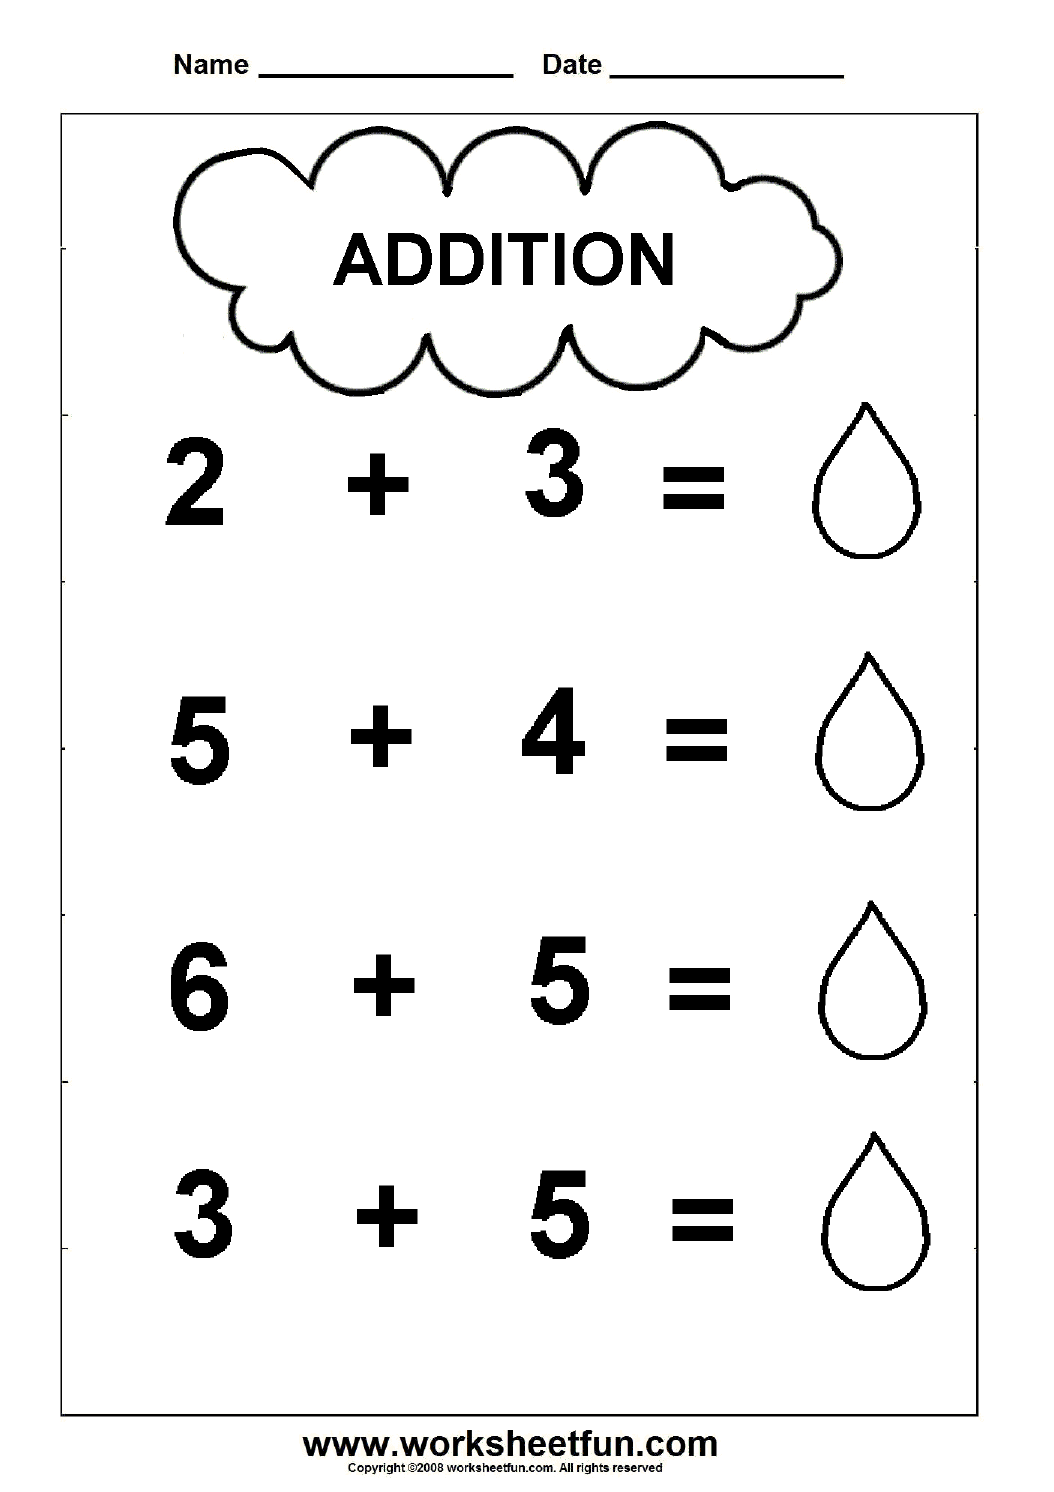 math worksheet : images of simple addition worksheets kindergarten  worksheet for  : Preschool Addition Worksheets Free